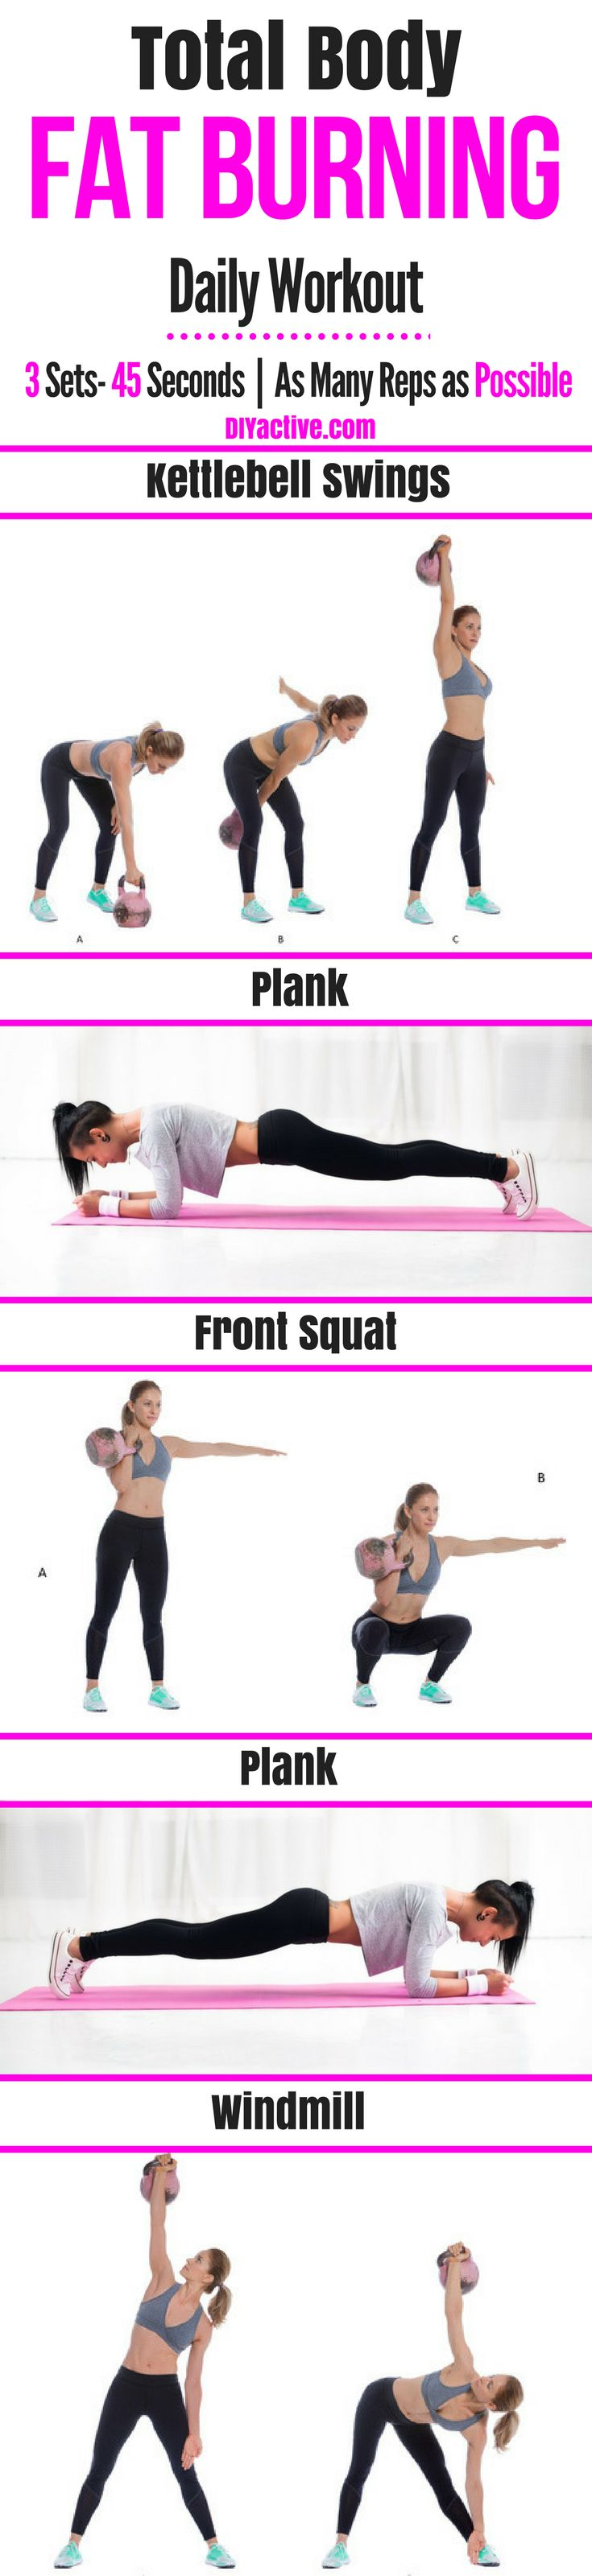 Pair this great daily workout with the great 2 week diet! #Weightloss #diet #workout